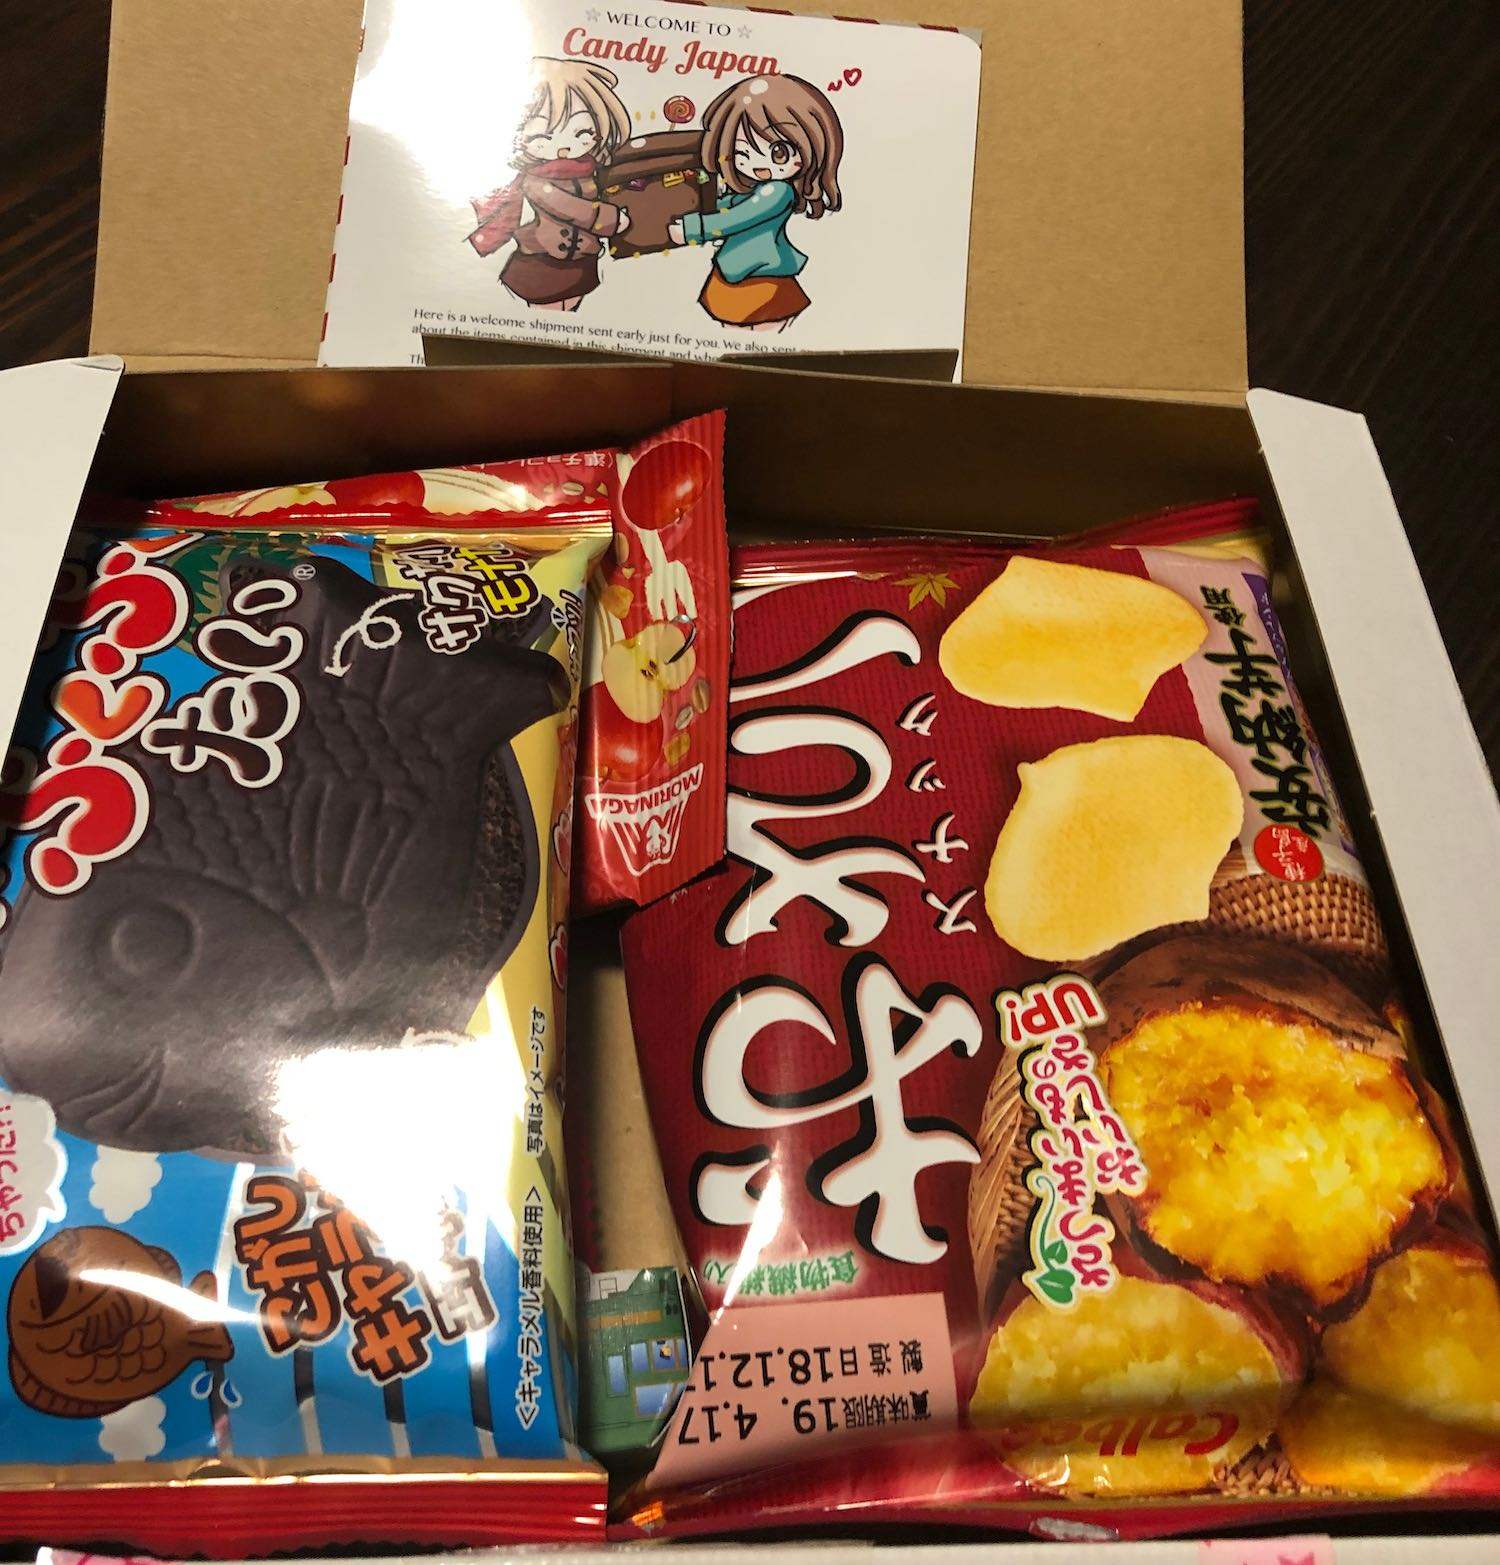 A box from Candy Japan